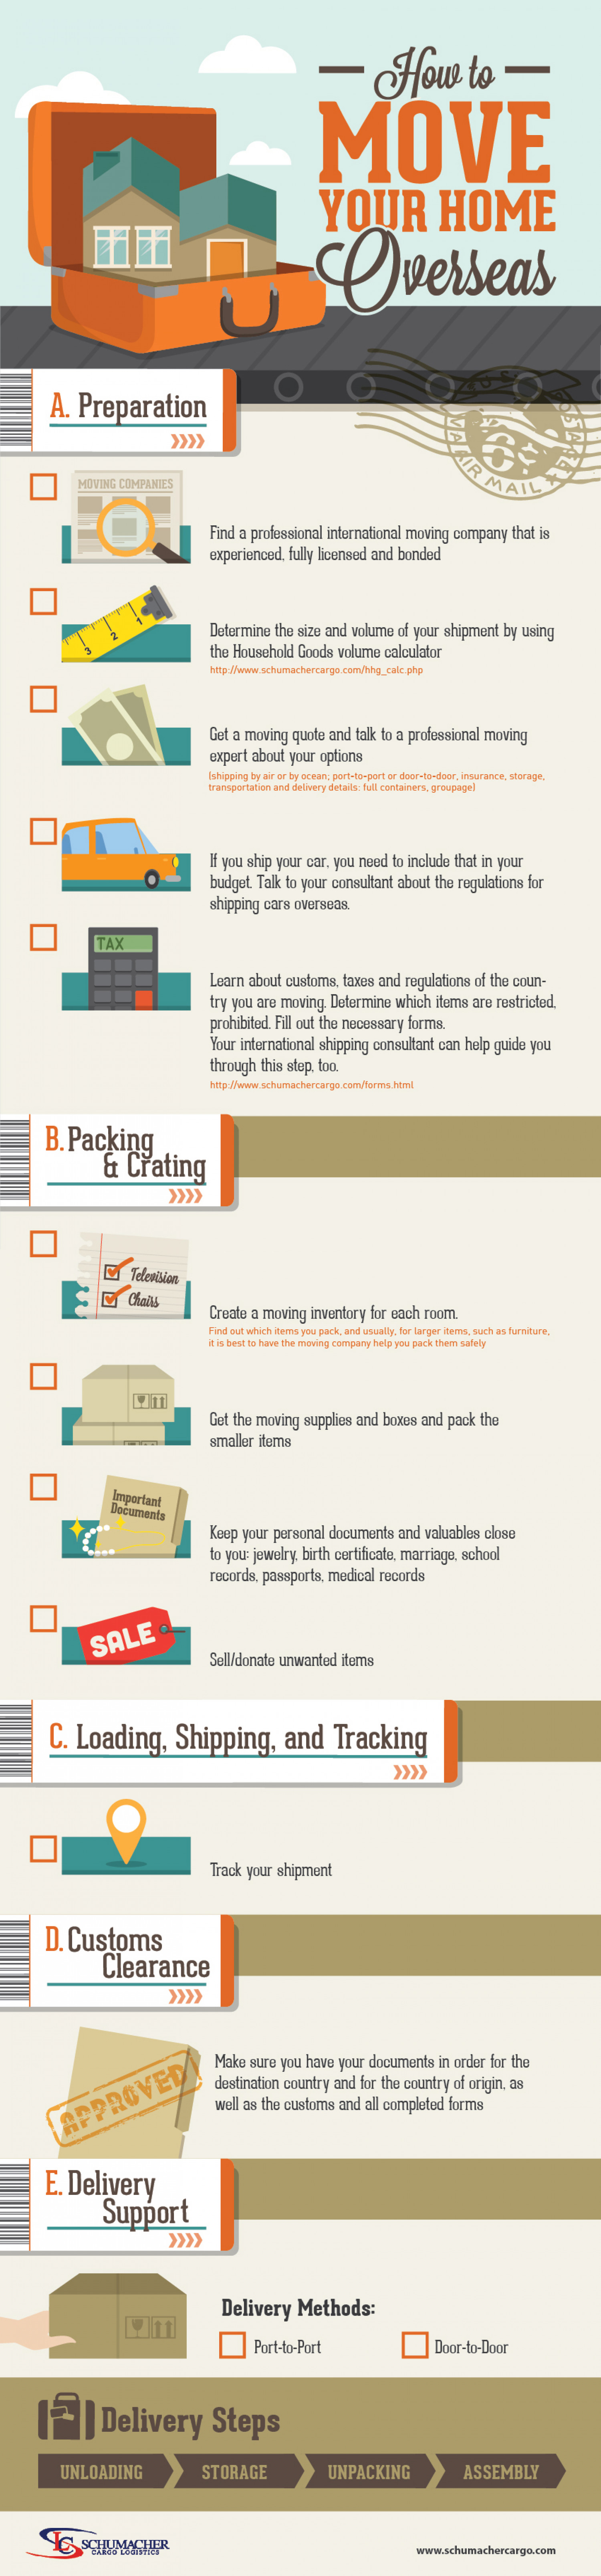 How to Move Your Home Overseas Infographic